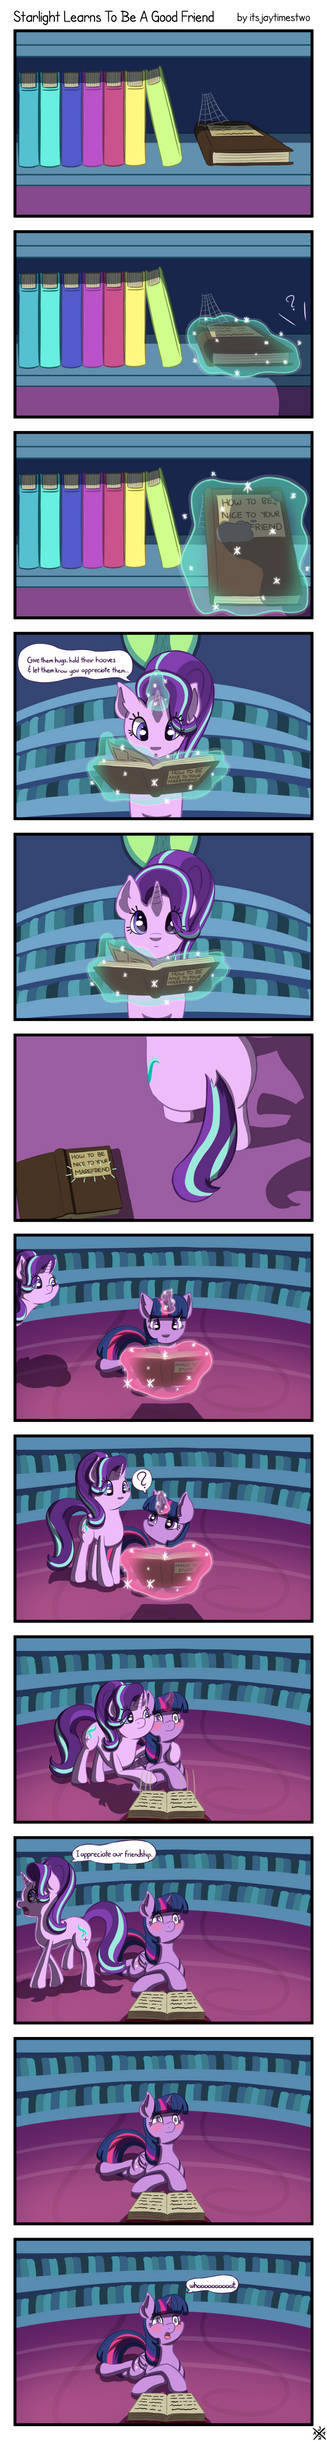 Starlight Learns to Be A Good Friend - Full Comic